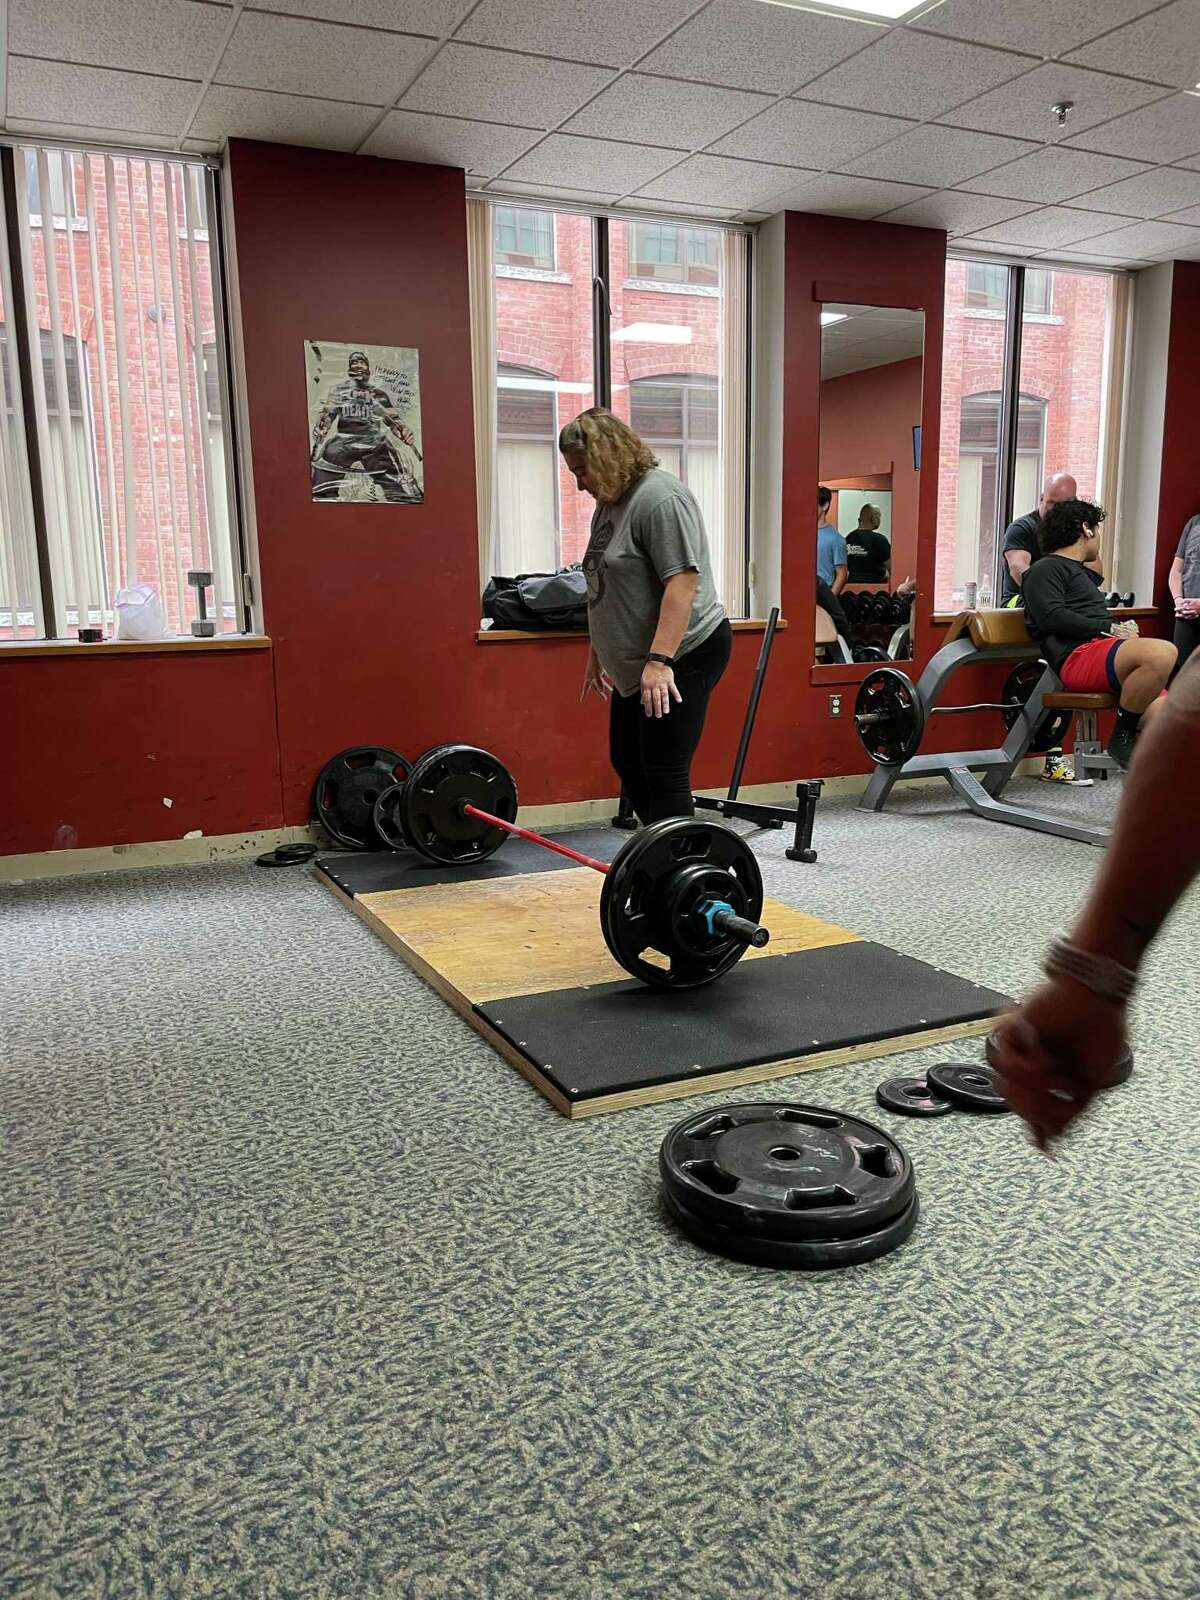 Energy Fitness Factory, 59 Field St., Torrington, launched its fall food drive for FISH with a weight lifting competition. The drive continues through October. Dora Carr was the winner in the women's competition.